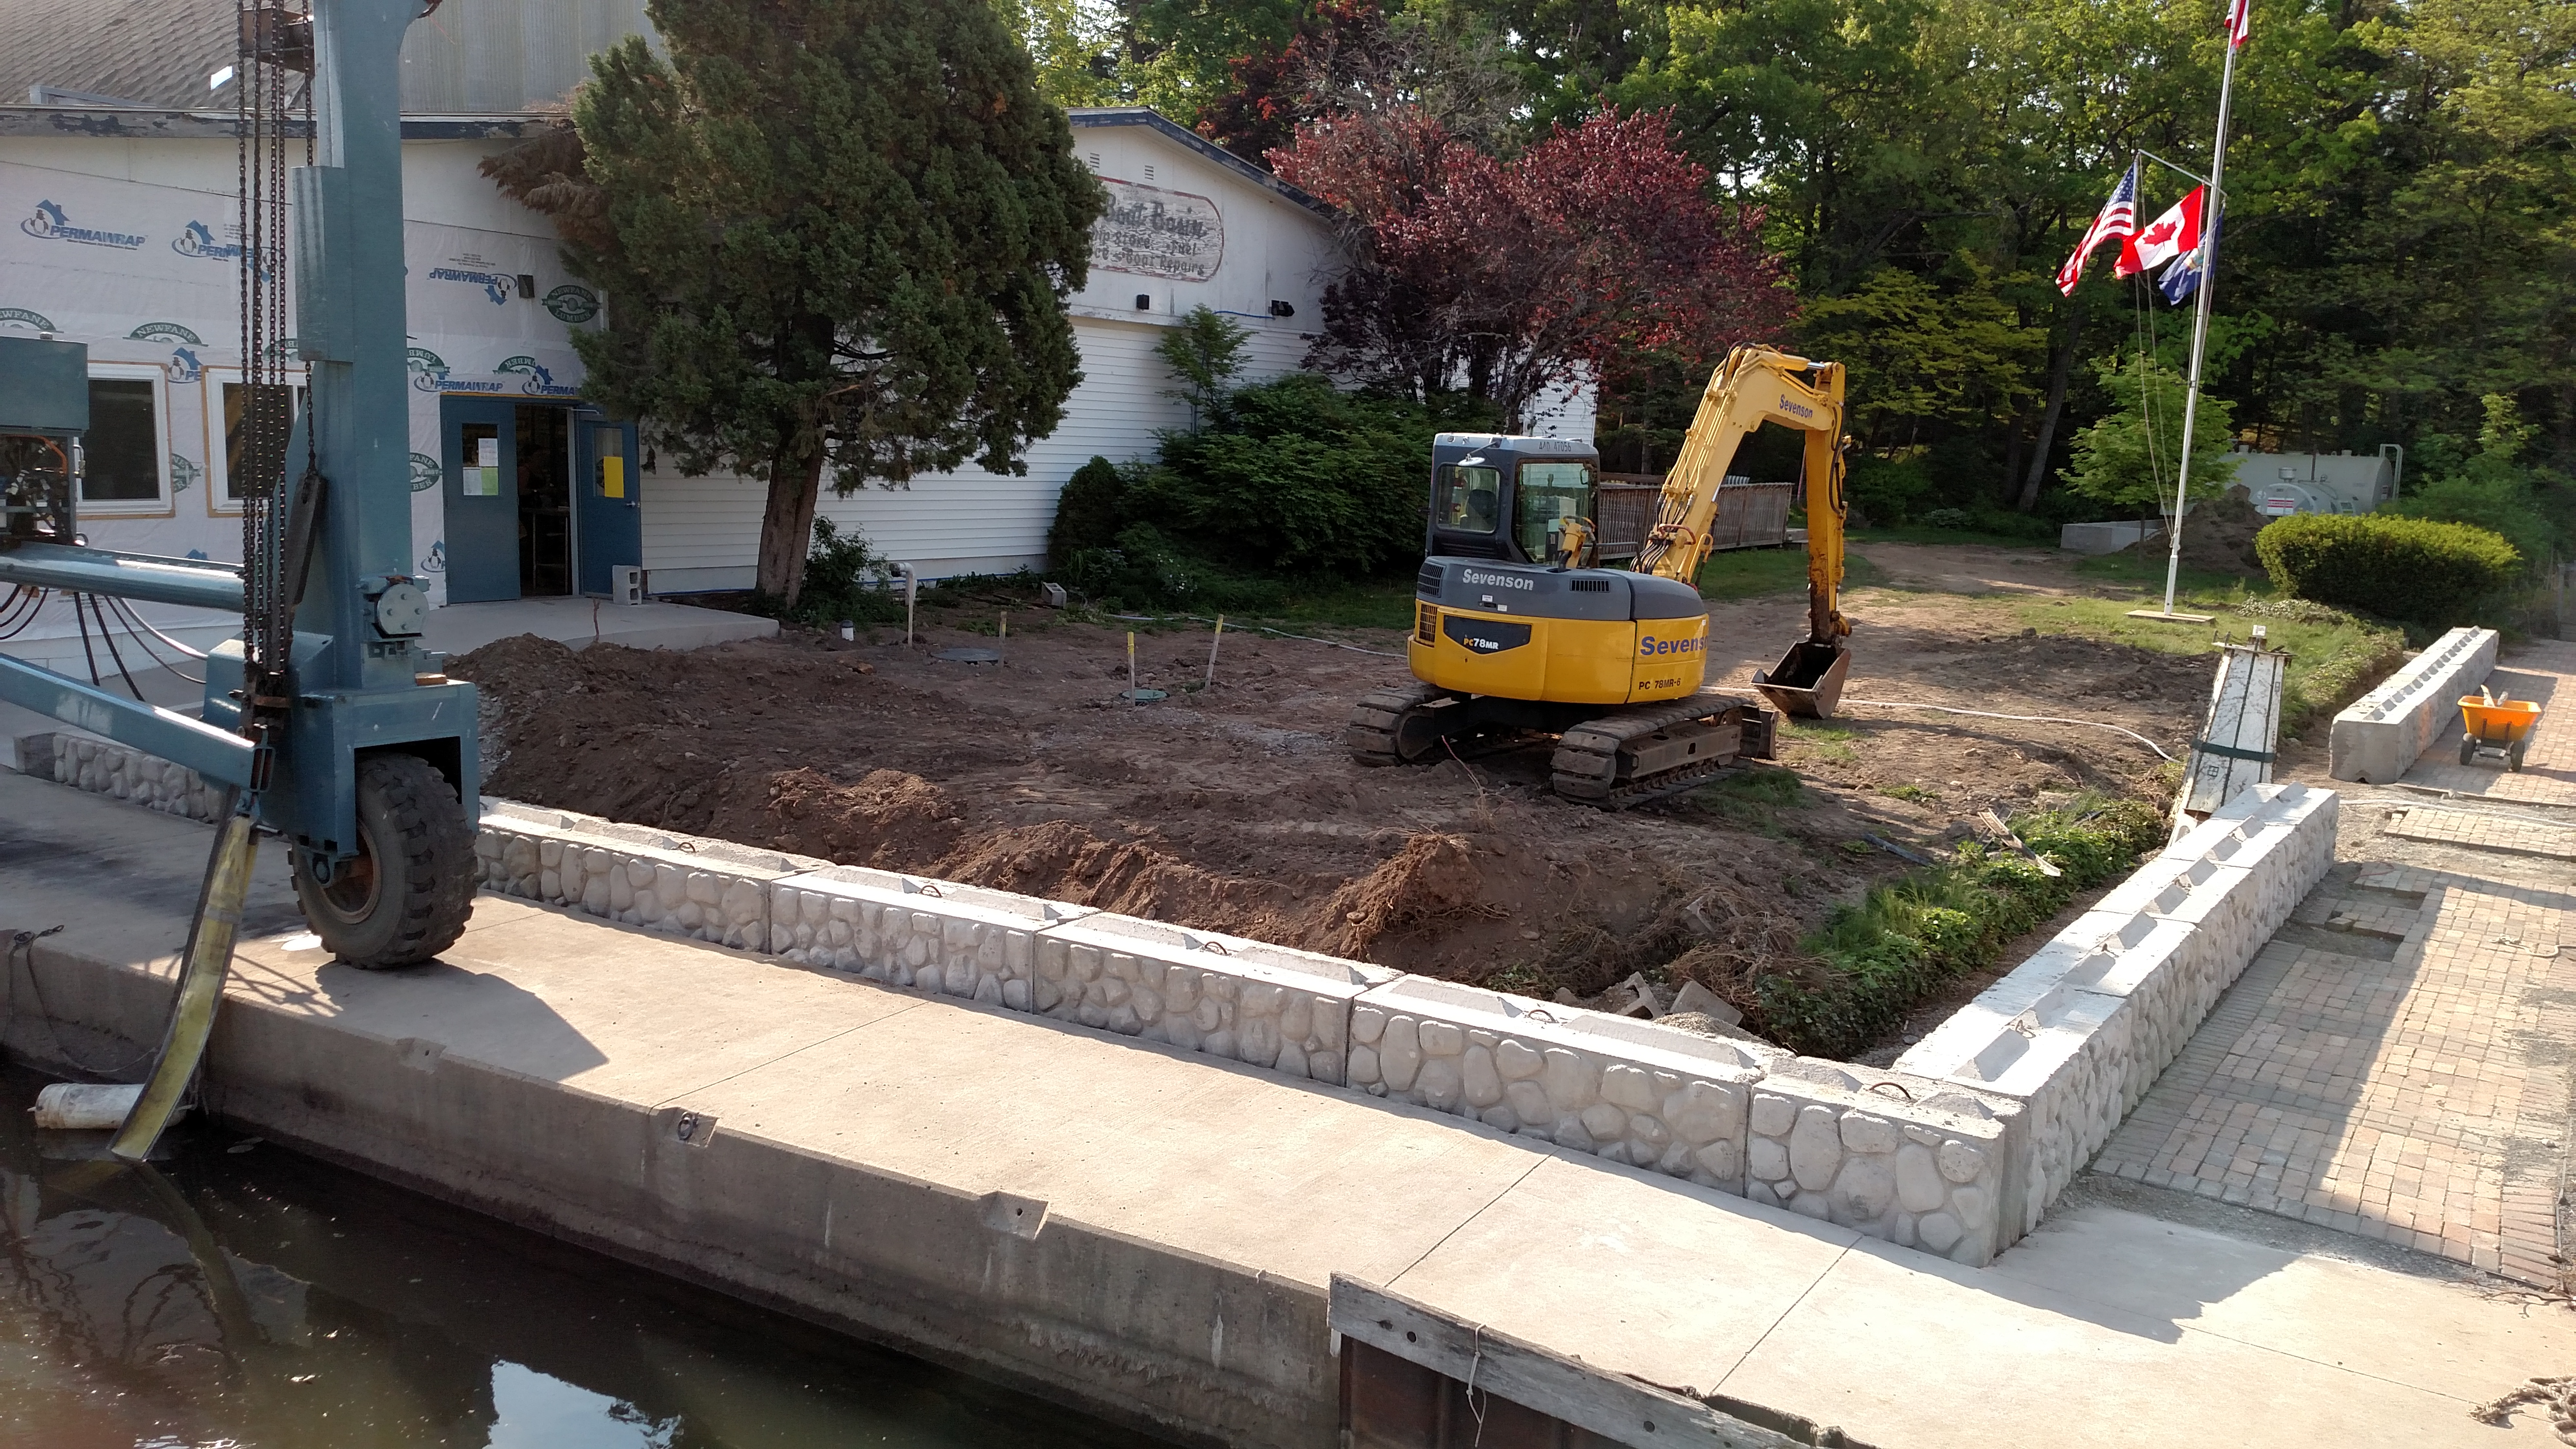 Installing Retaining Wall - Bootleggers Cove Renovation Project